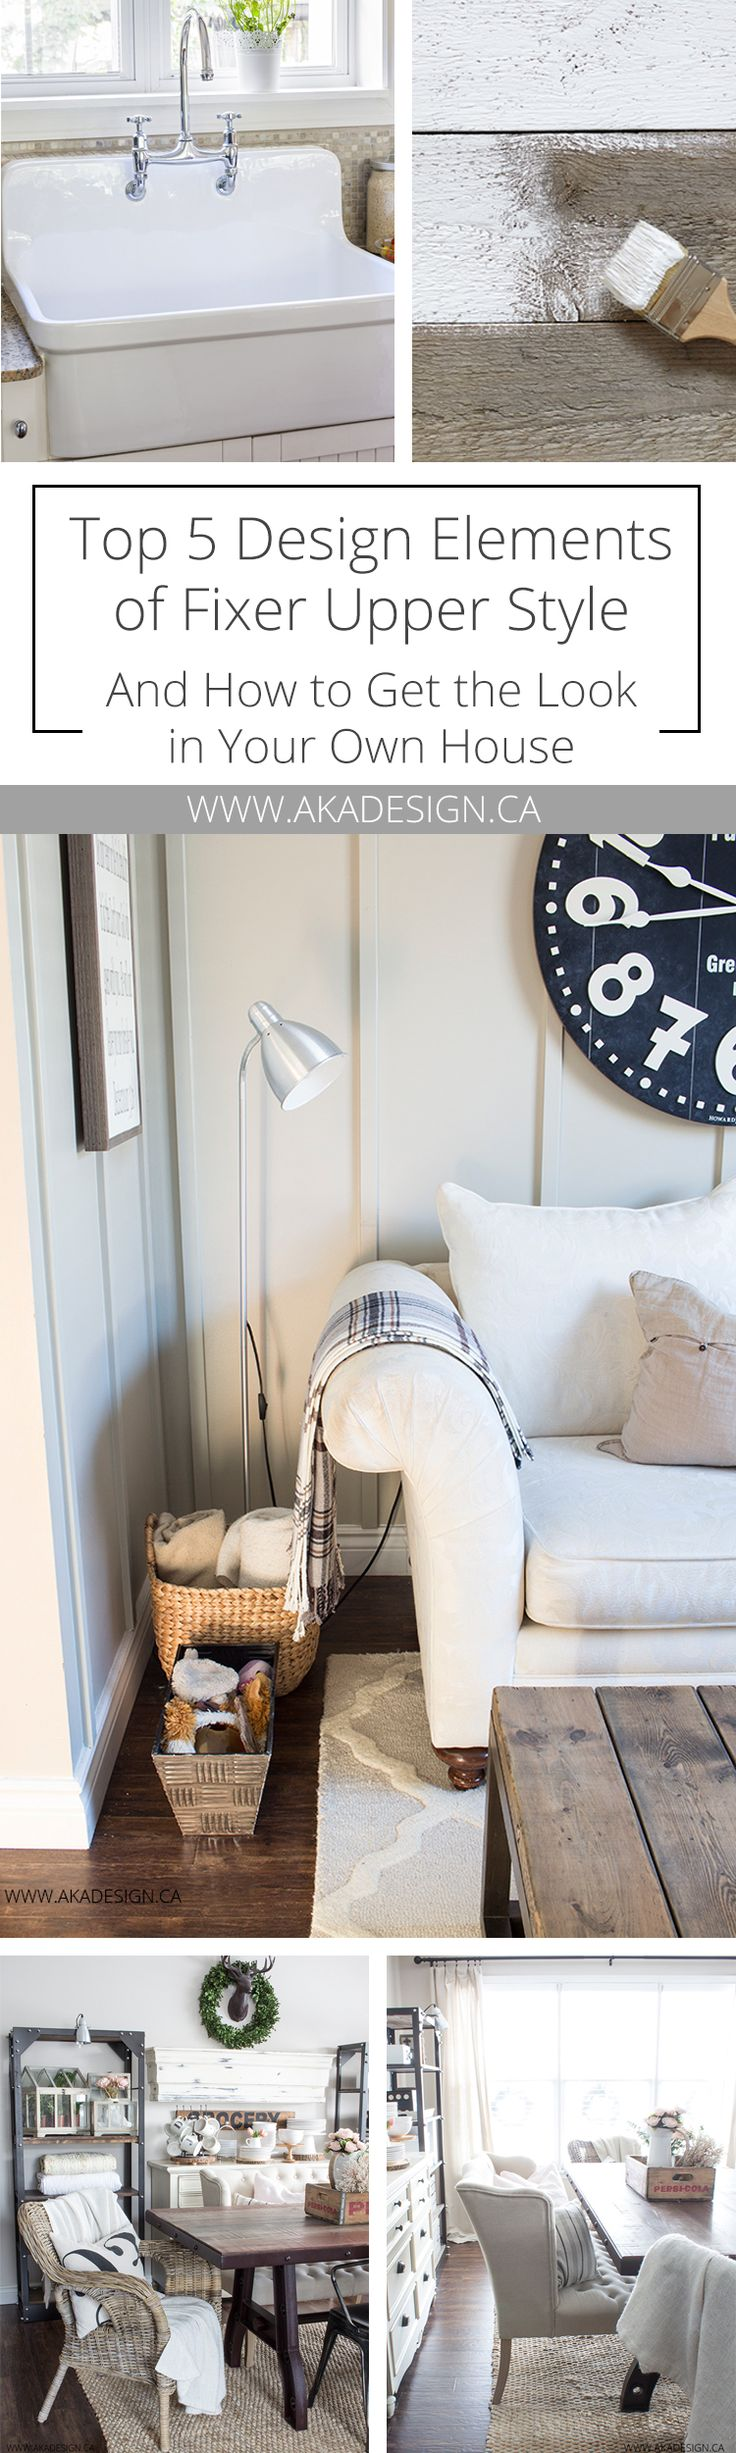 Top 5 Design Elements of Fixer Upper Style and How to Get the Look in Your Own House   | Farmhouse Style